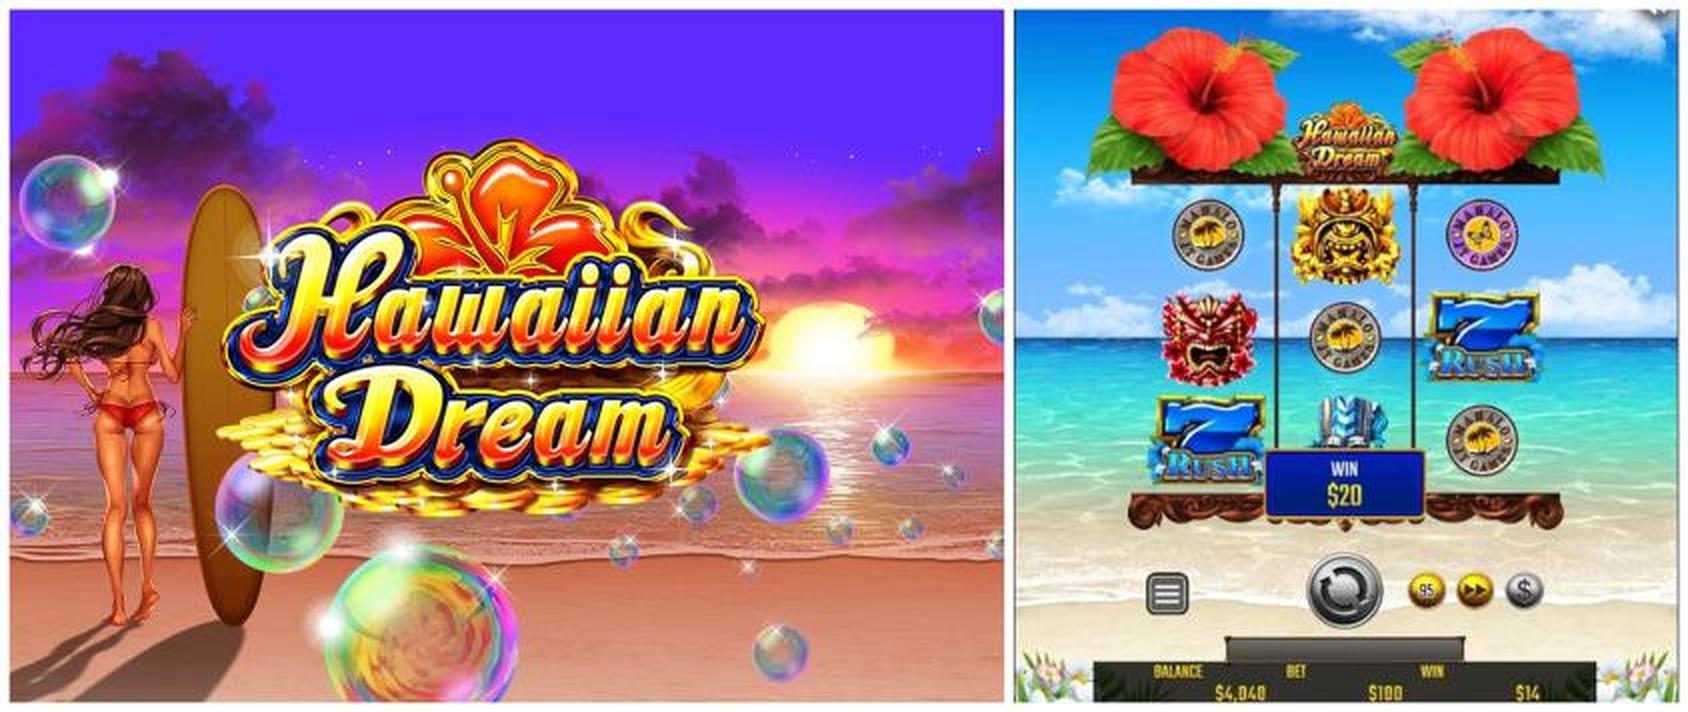 Se Hawaiian Dream Online Slot Demo Game, JTG